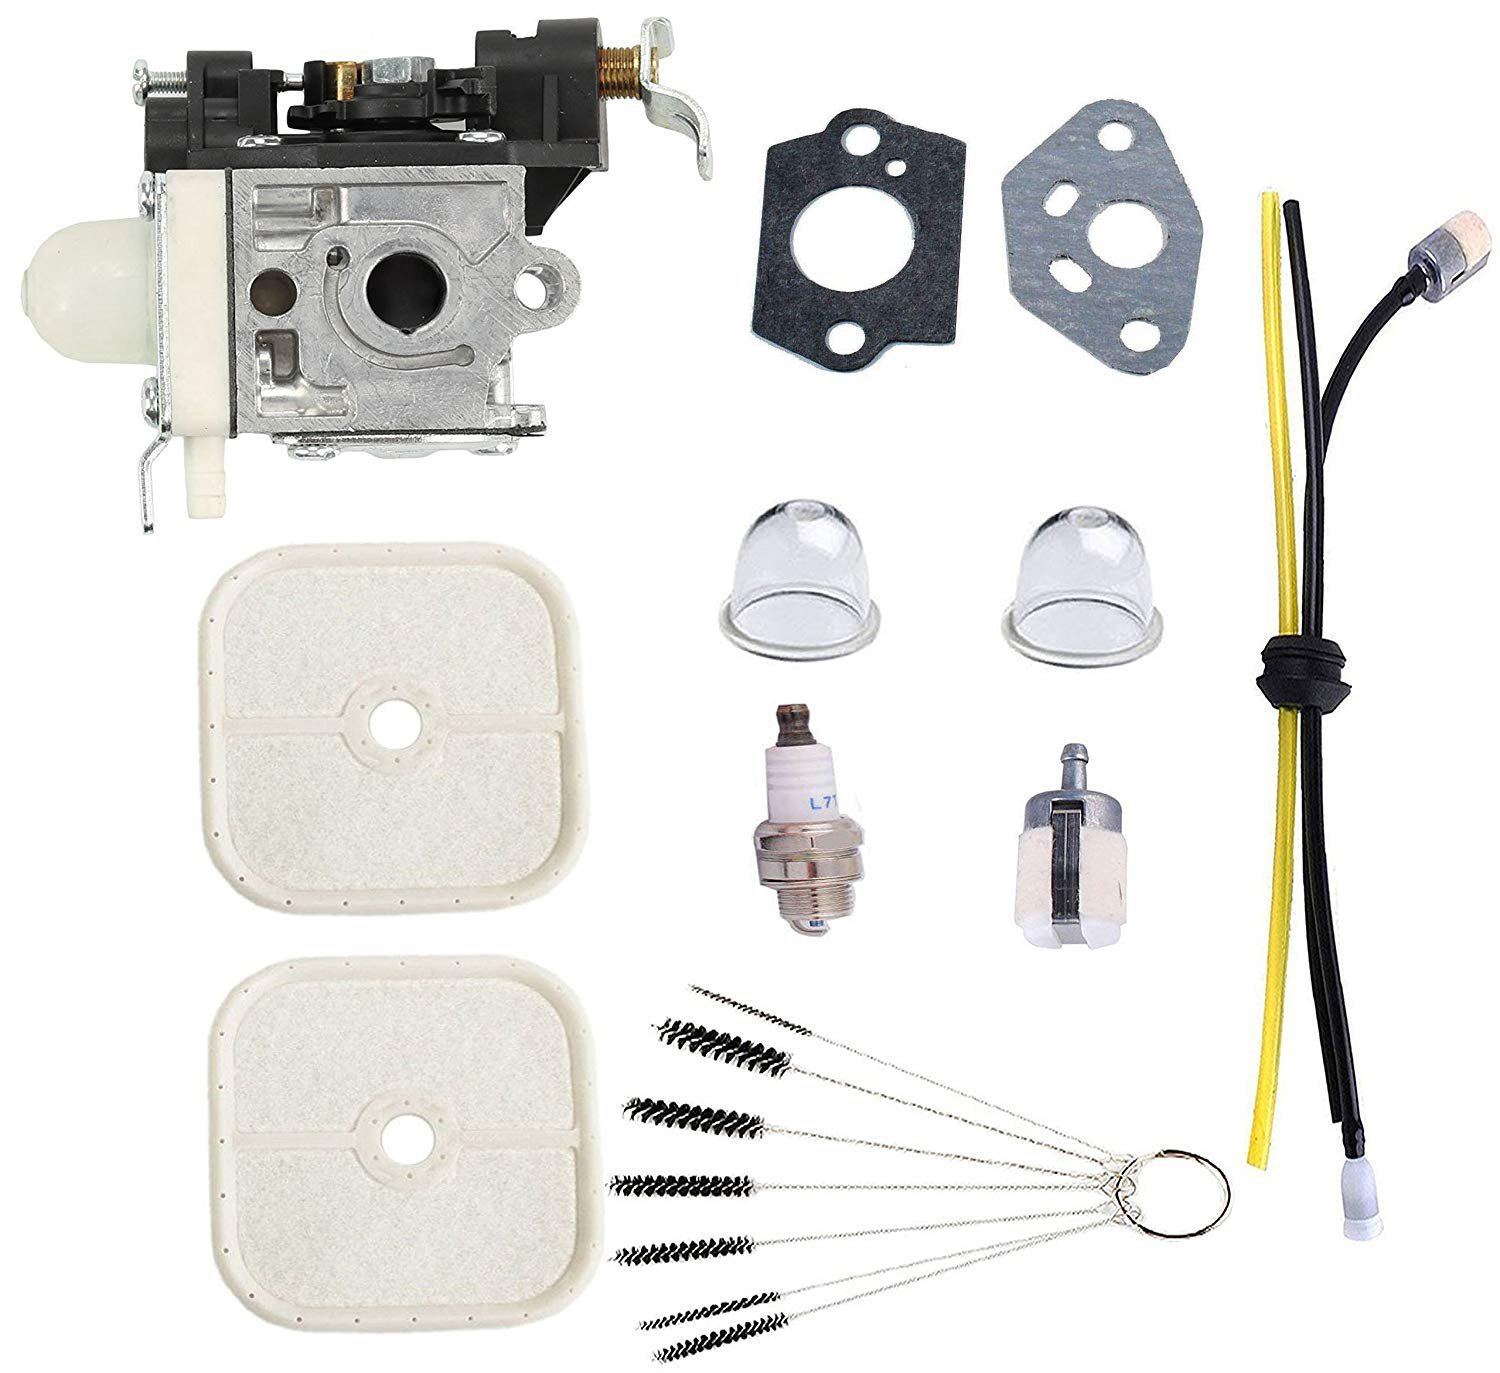 Podoy PB-251 Carburetor for Echo Parts Power Blowers Tune Up Kit Maintenance Fuel Line with Spark Plug Primer Bulb Brushes Cleaner Tool PB-265L RB-K85